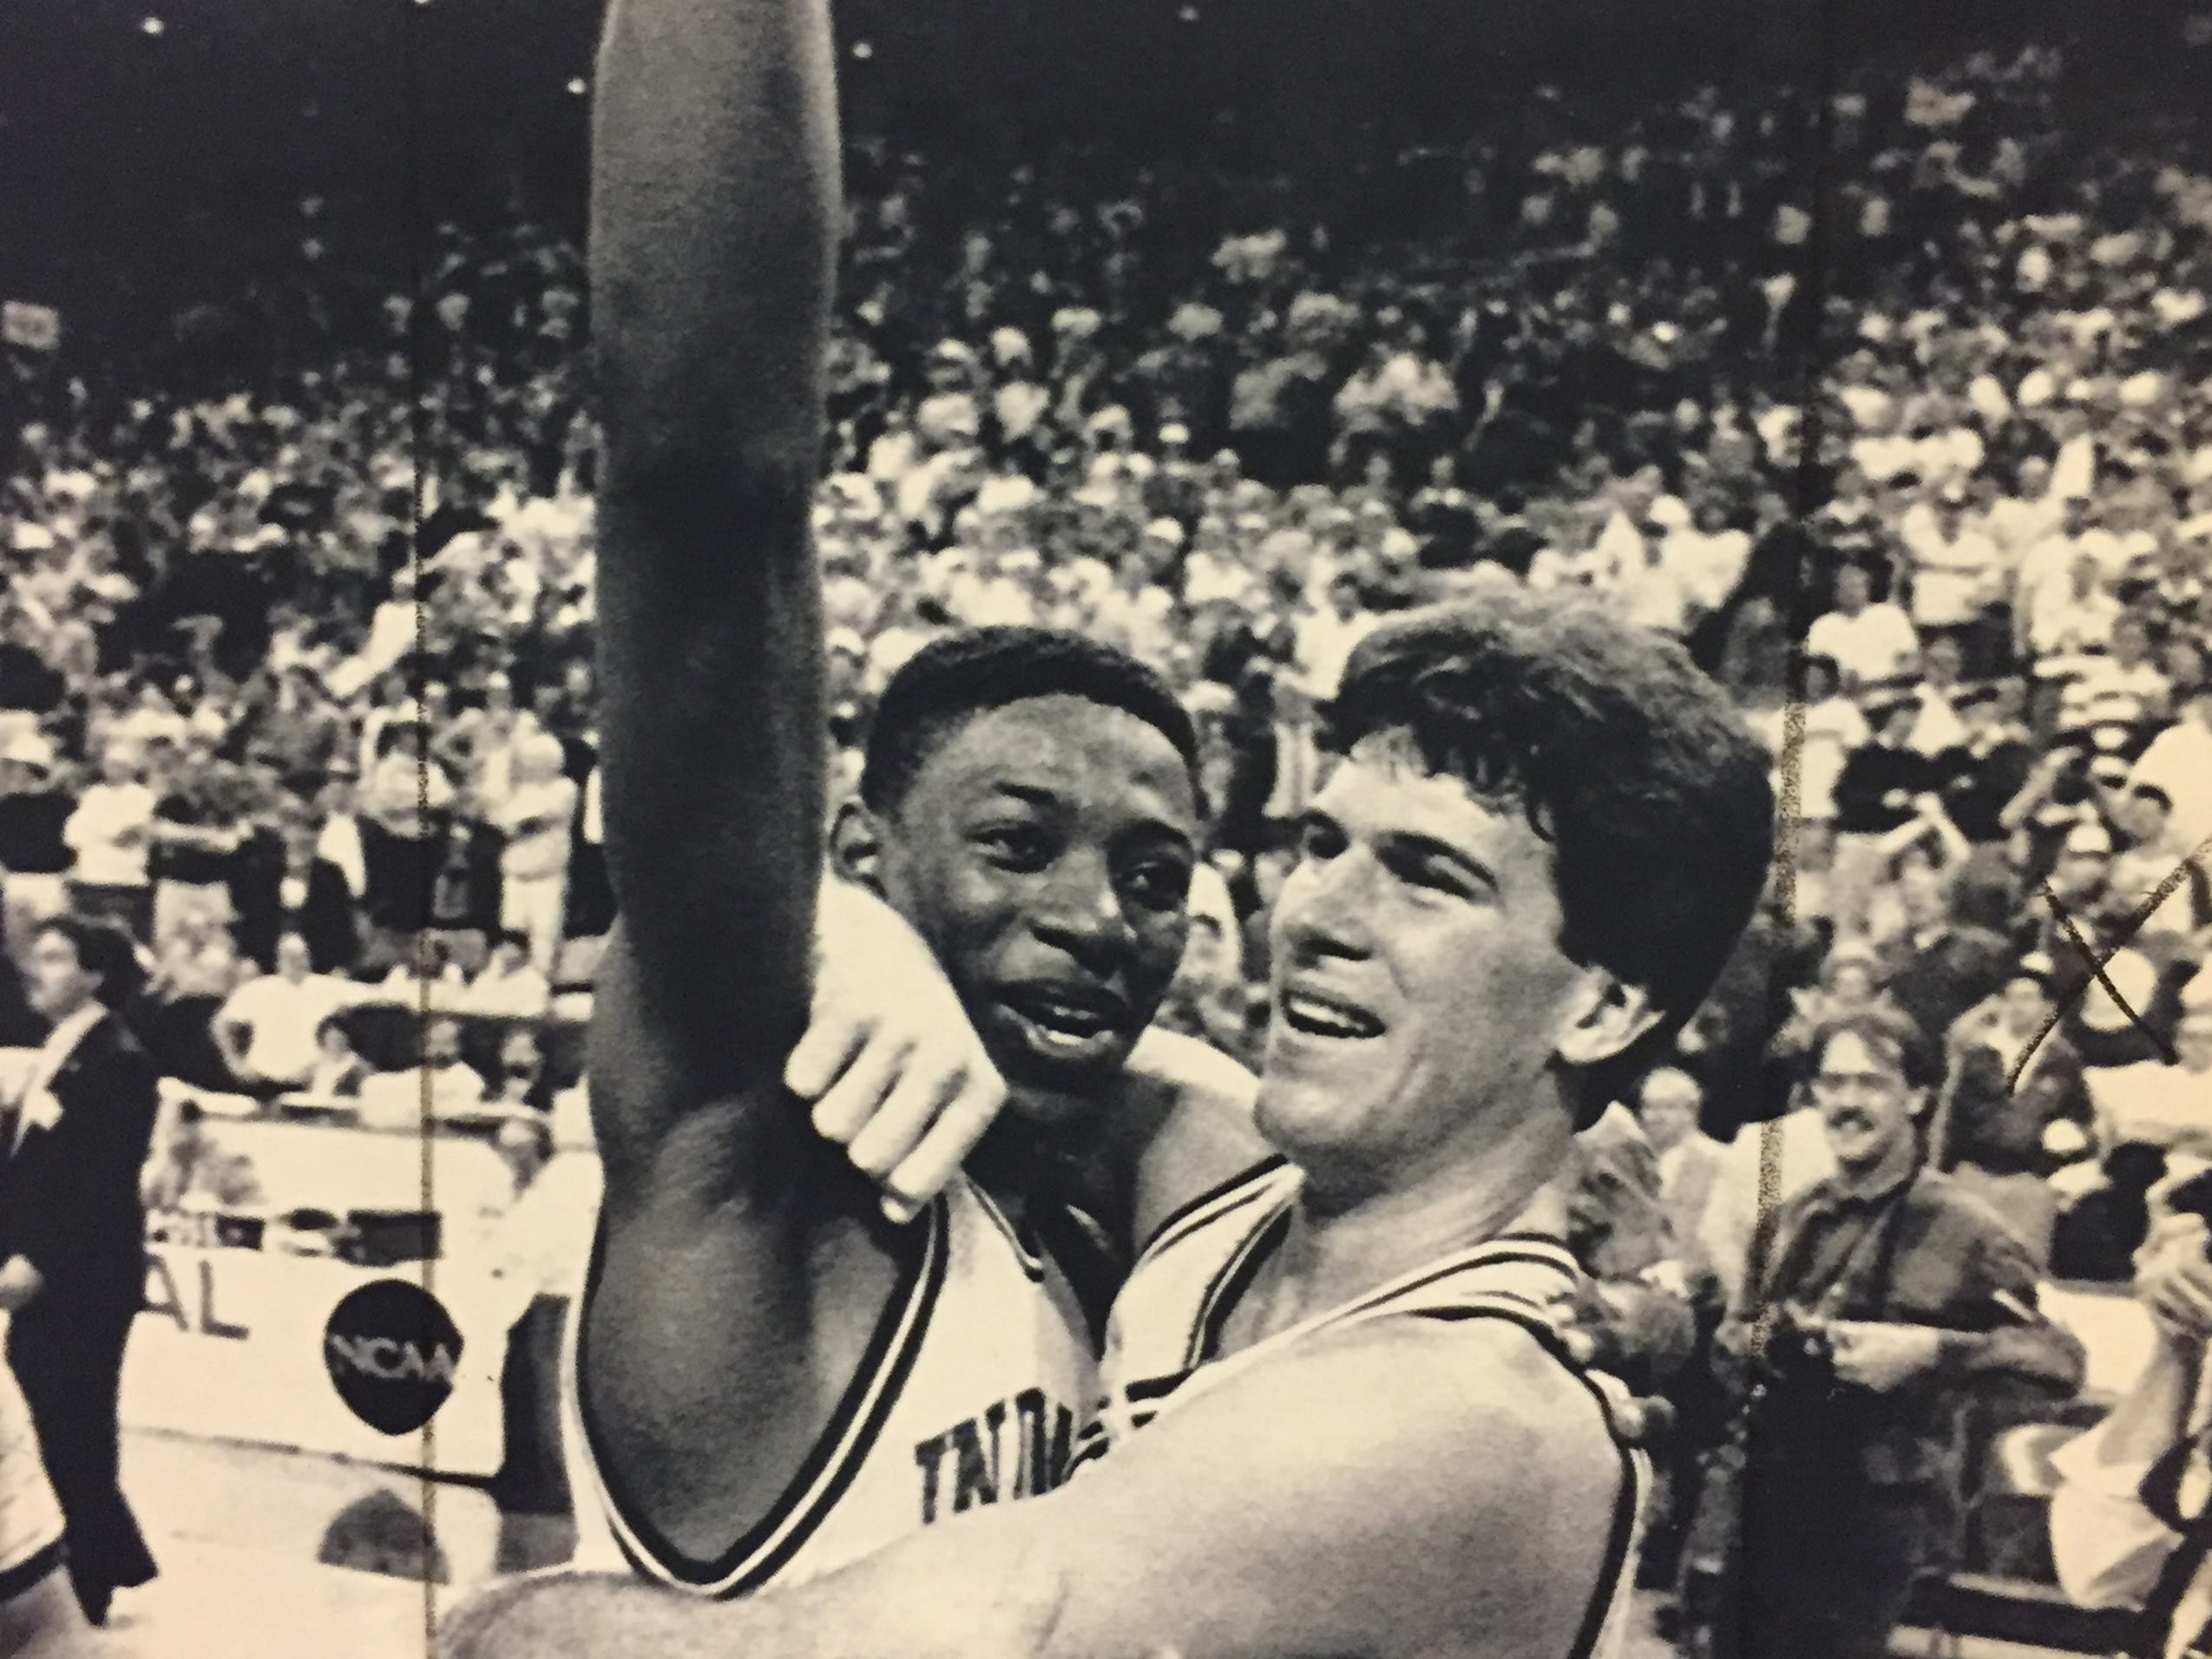 Steve Alford hugs Keith Smart after the Hoosiers beat LSU to advance to the 1987 Final Four.